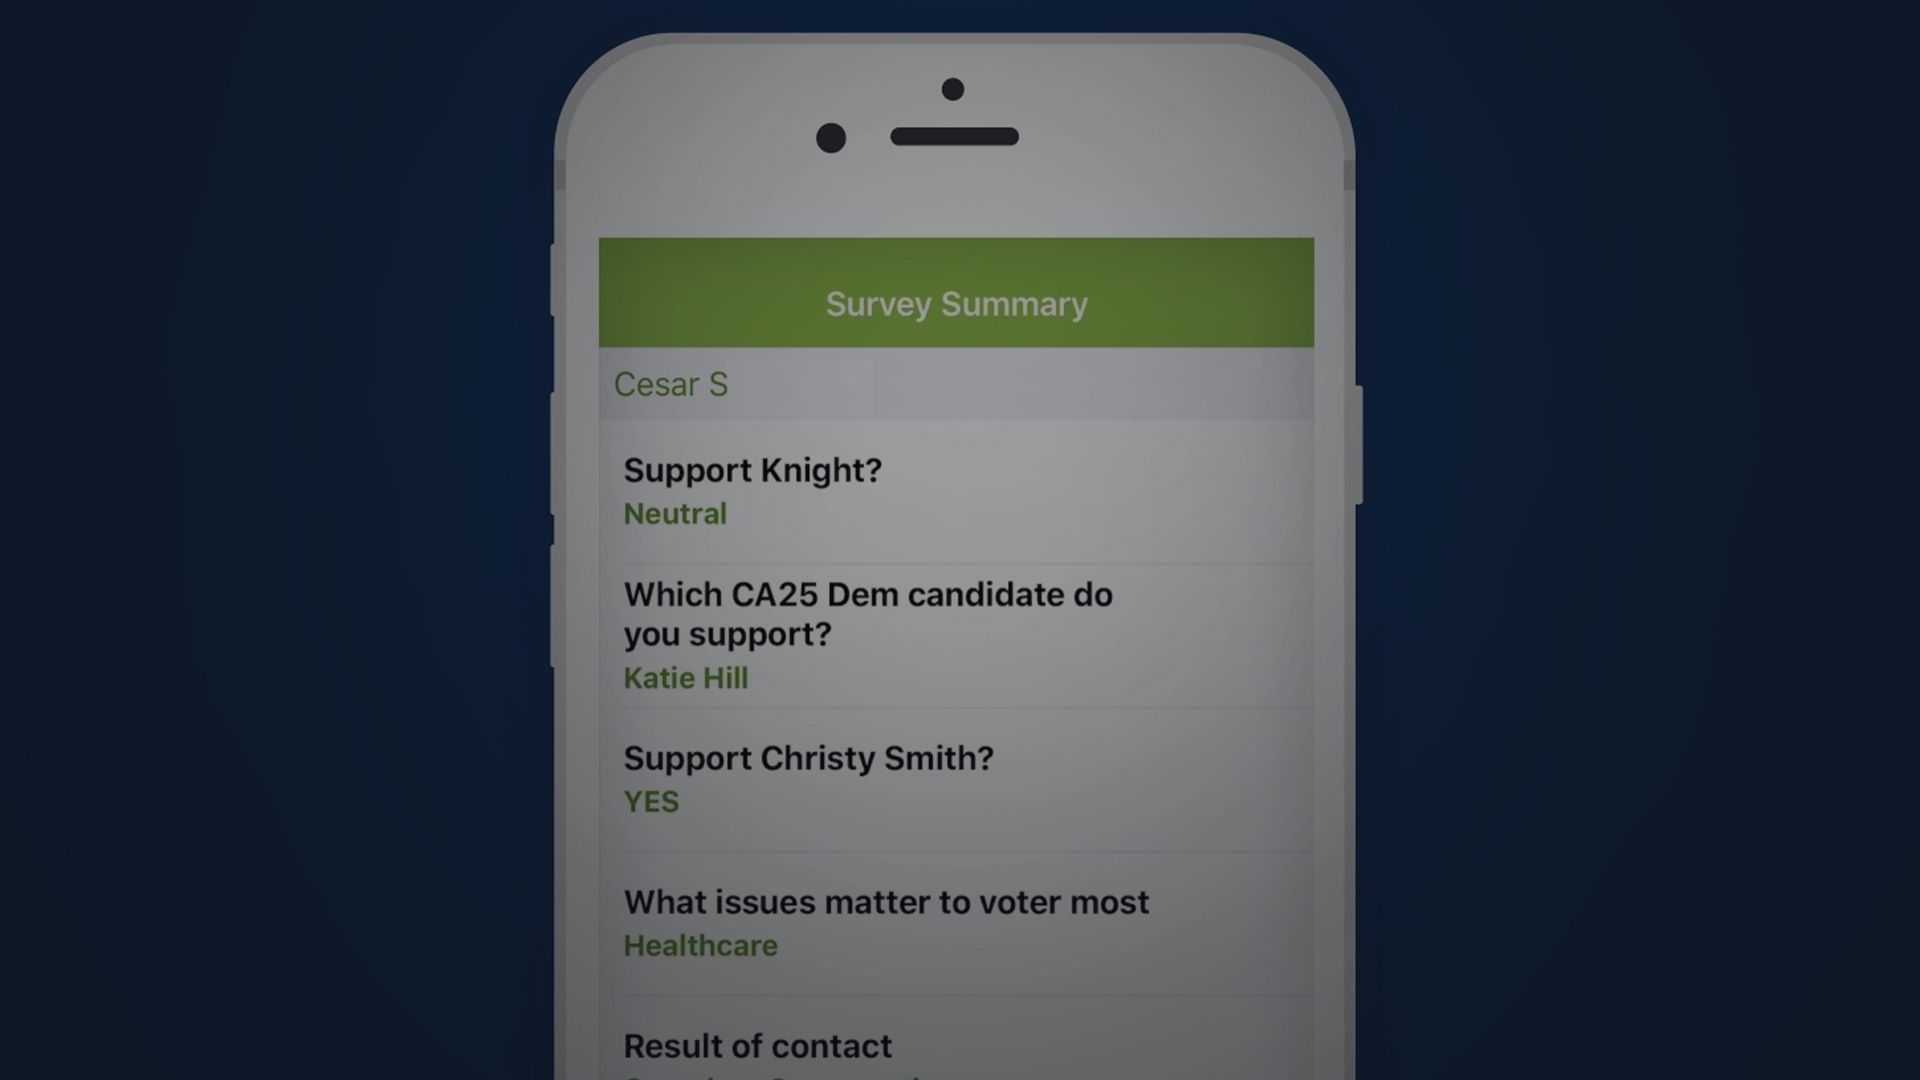 How to use PDI Mobile Connect - When you're out knocking doors, some campaigns will ask you to use mobile apps instead of paper lists. Get ready for your upcoming canvass and learn the ins & outs of PDI Mobile Connect!